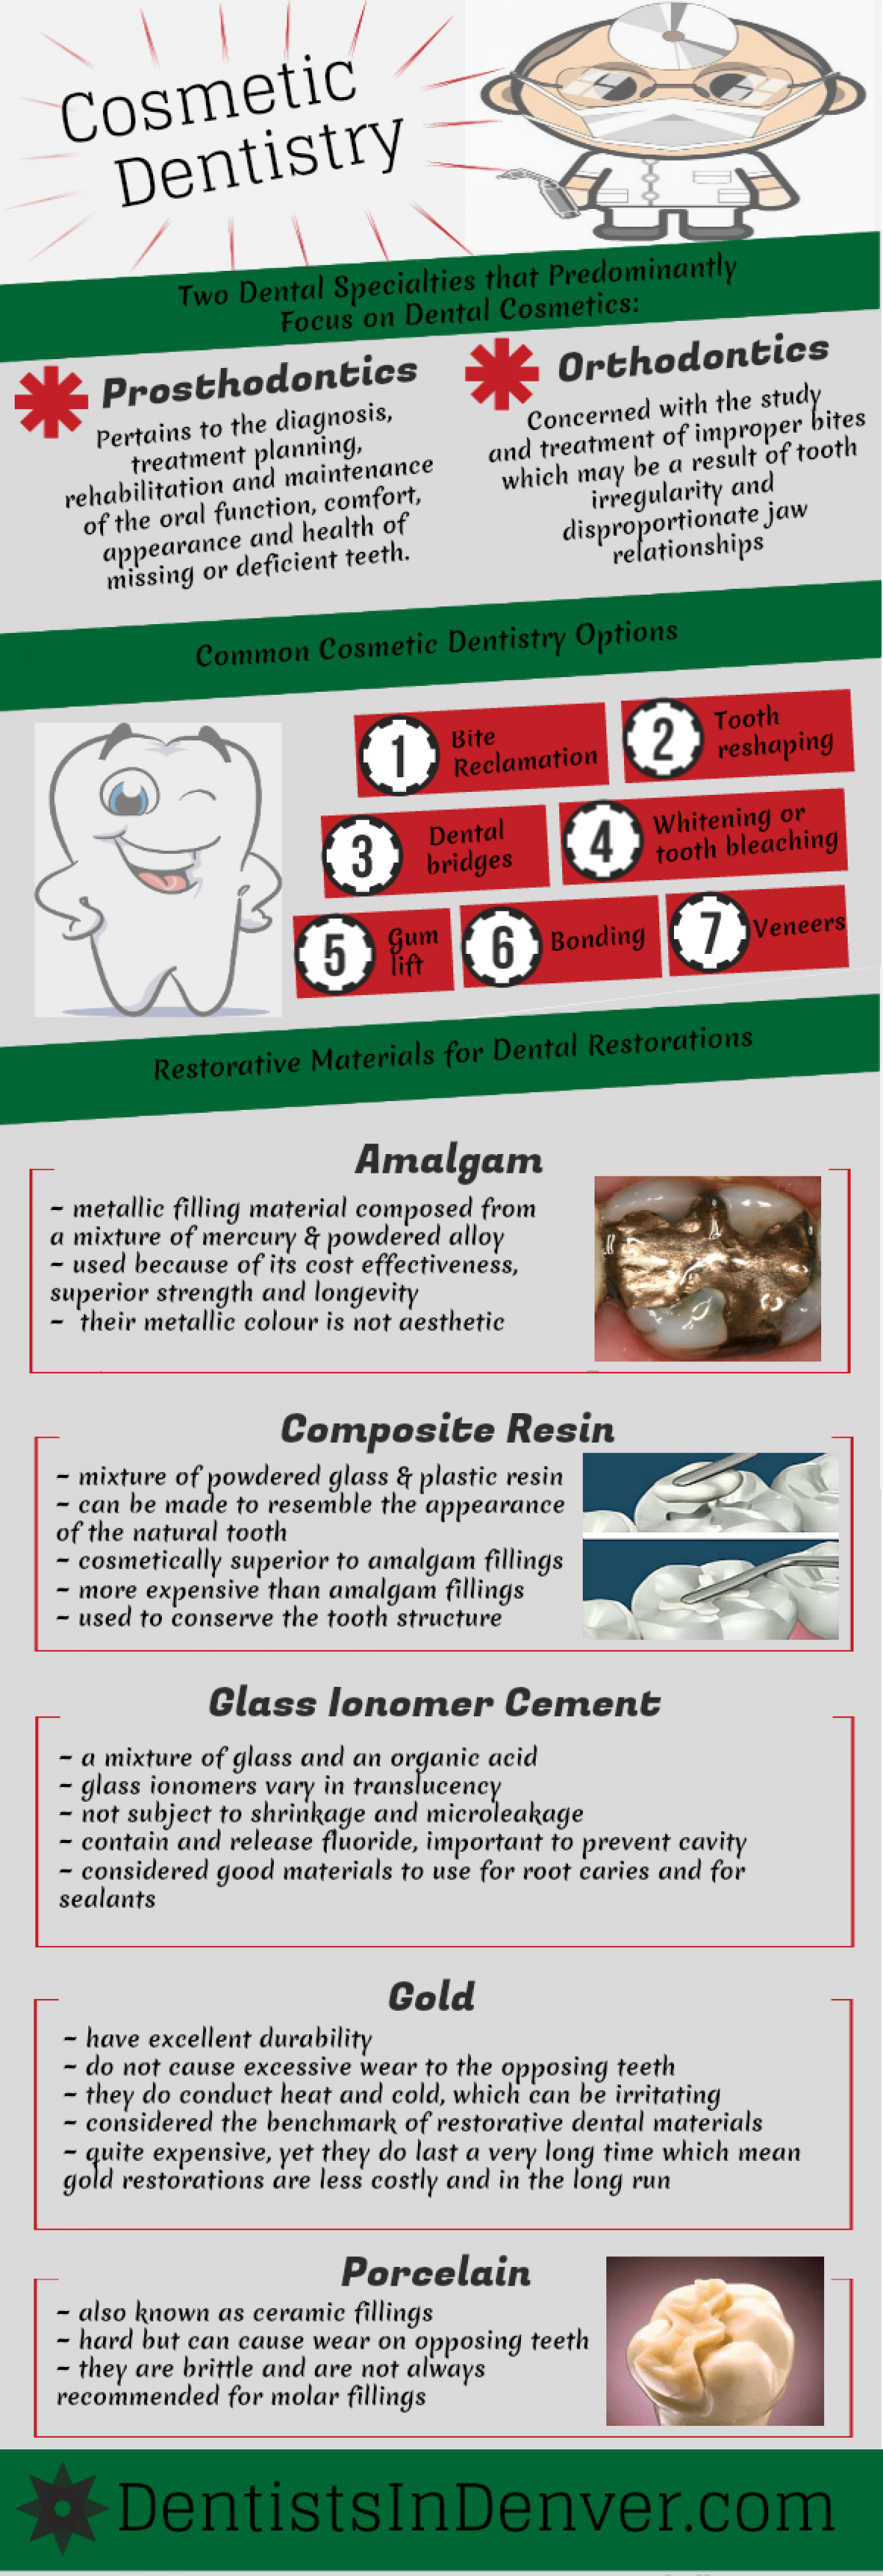 Cosmetic Dentistry Infographic